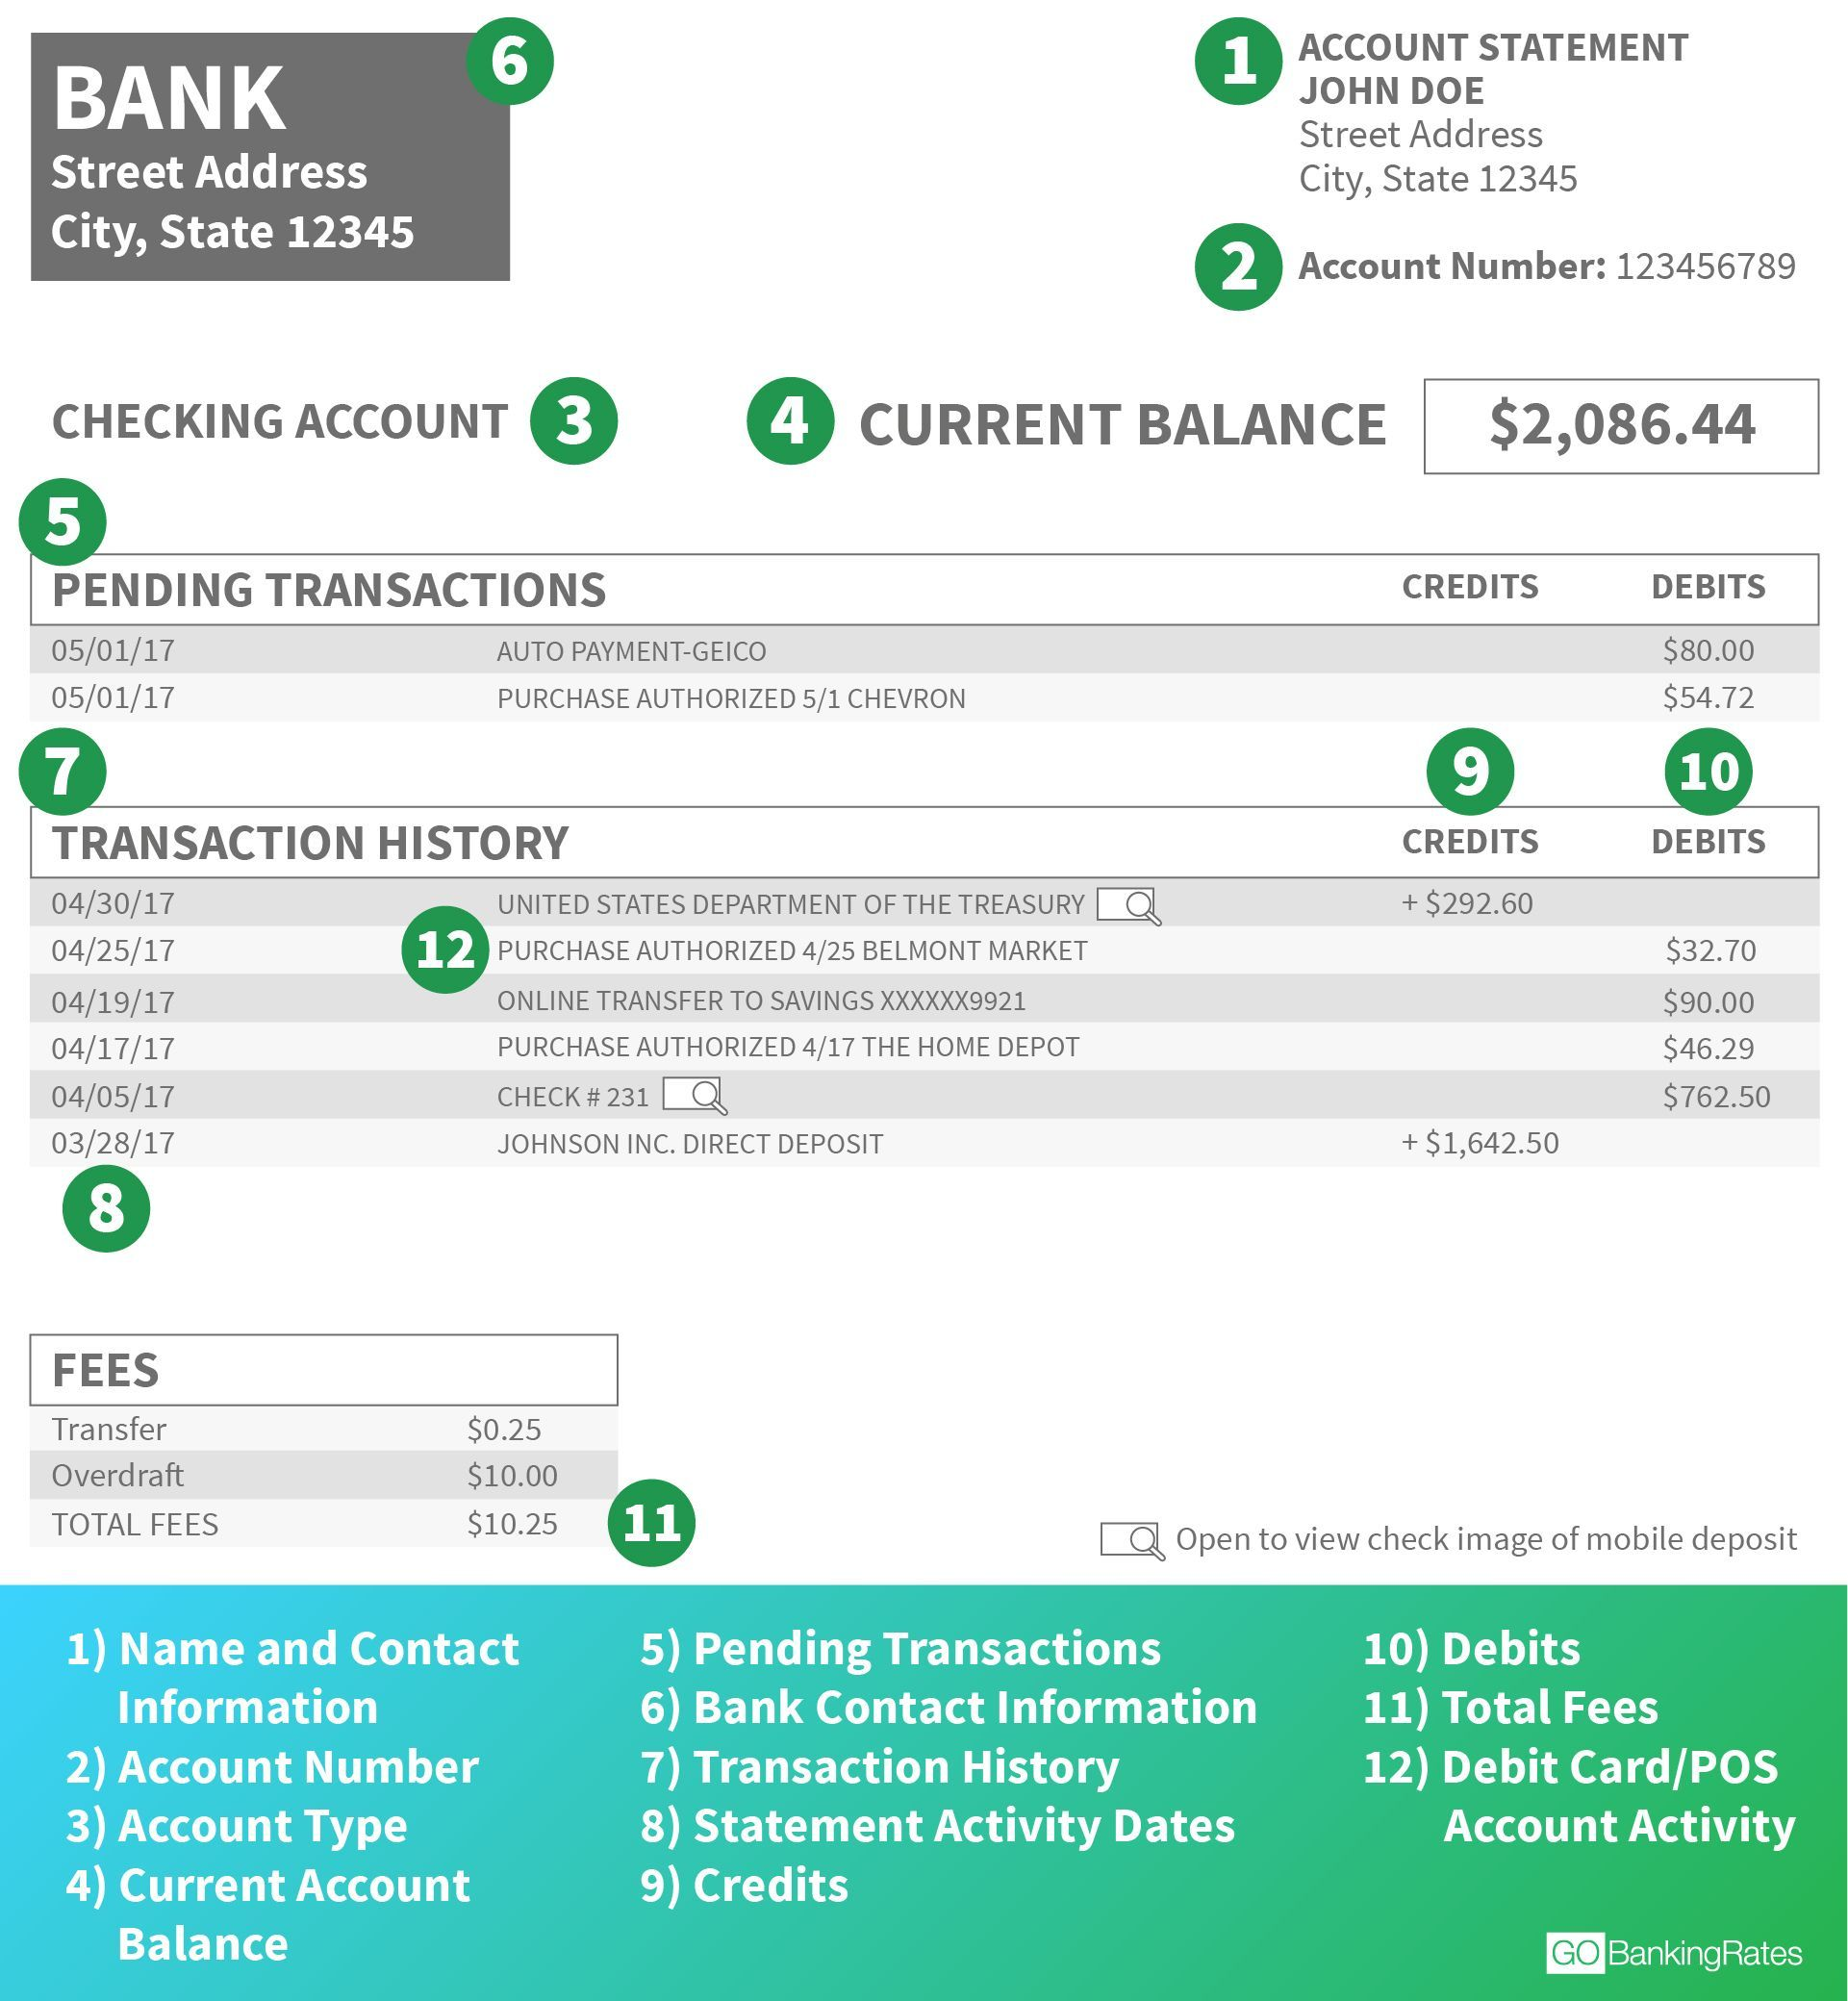 How To Get Statement Of Account From First Bank